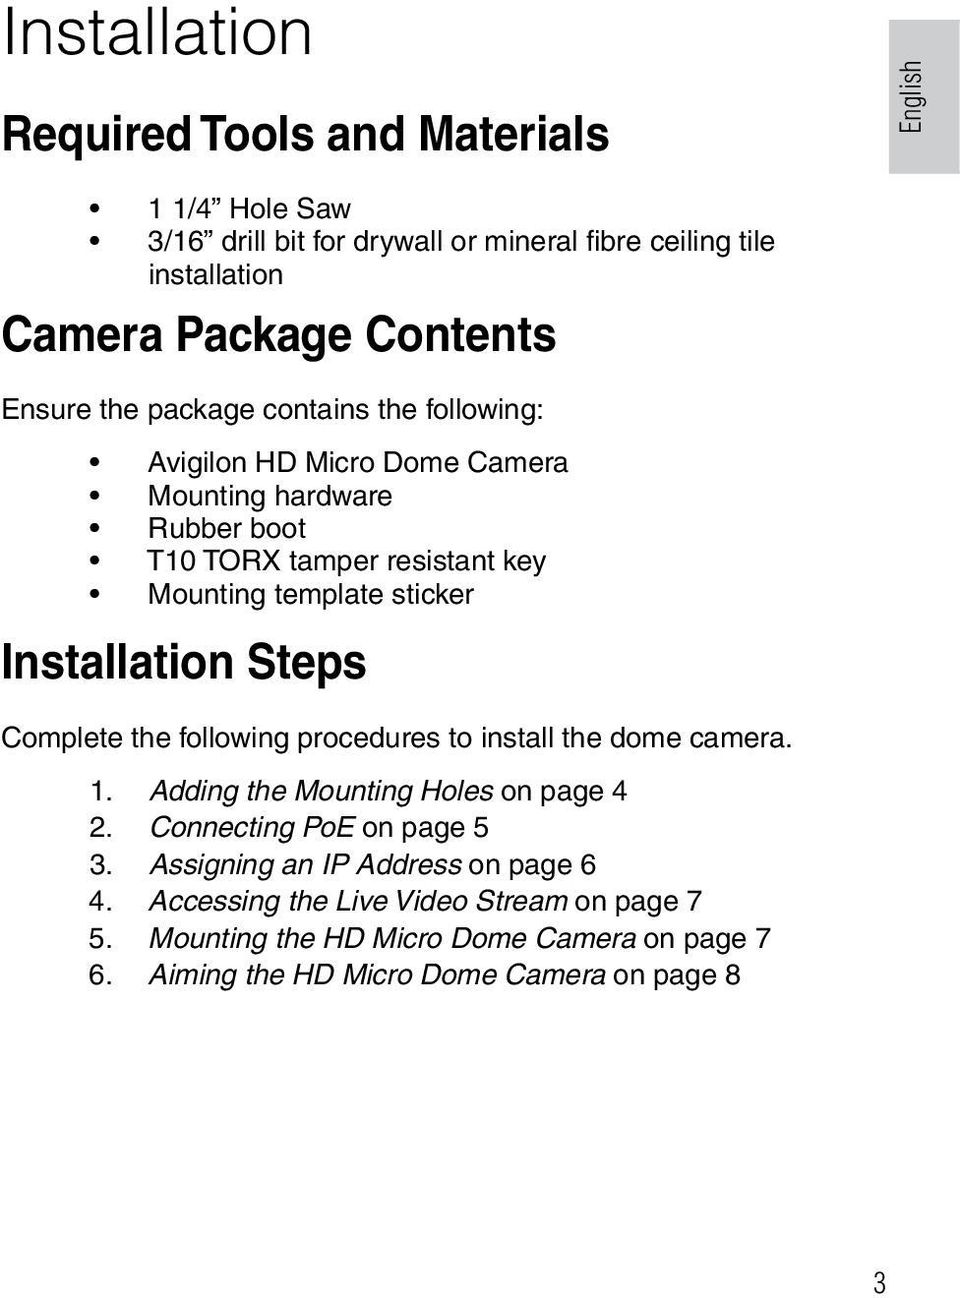 Installation Steps Complete the following procedures to install the dome camera. 1. Adding the Mounting Holes on page 4 2. Connecting PoE on page 5 3.